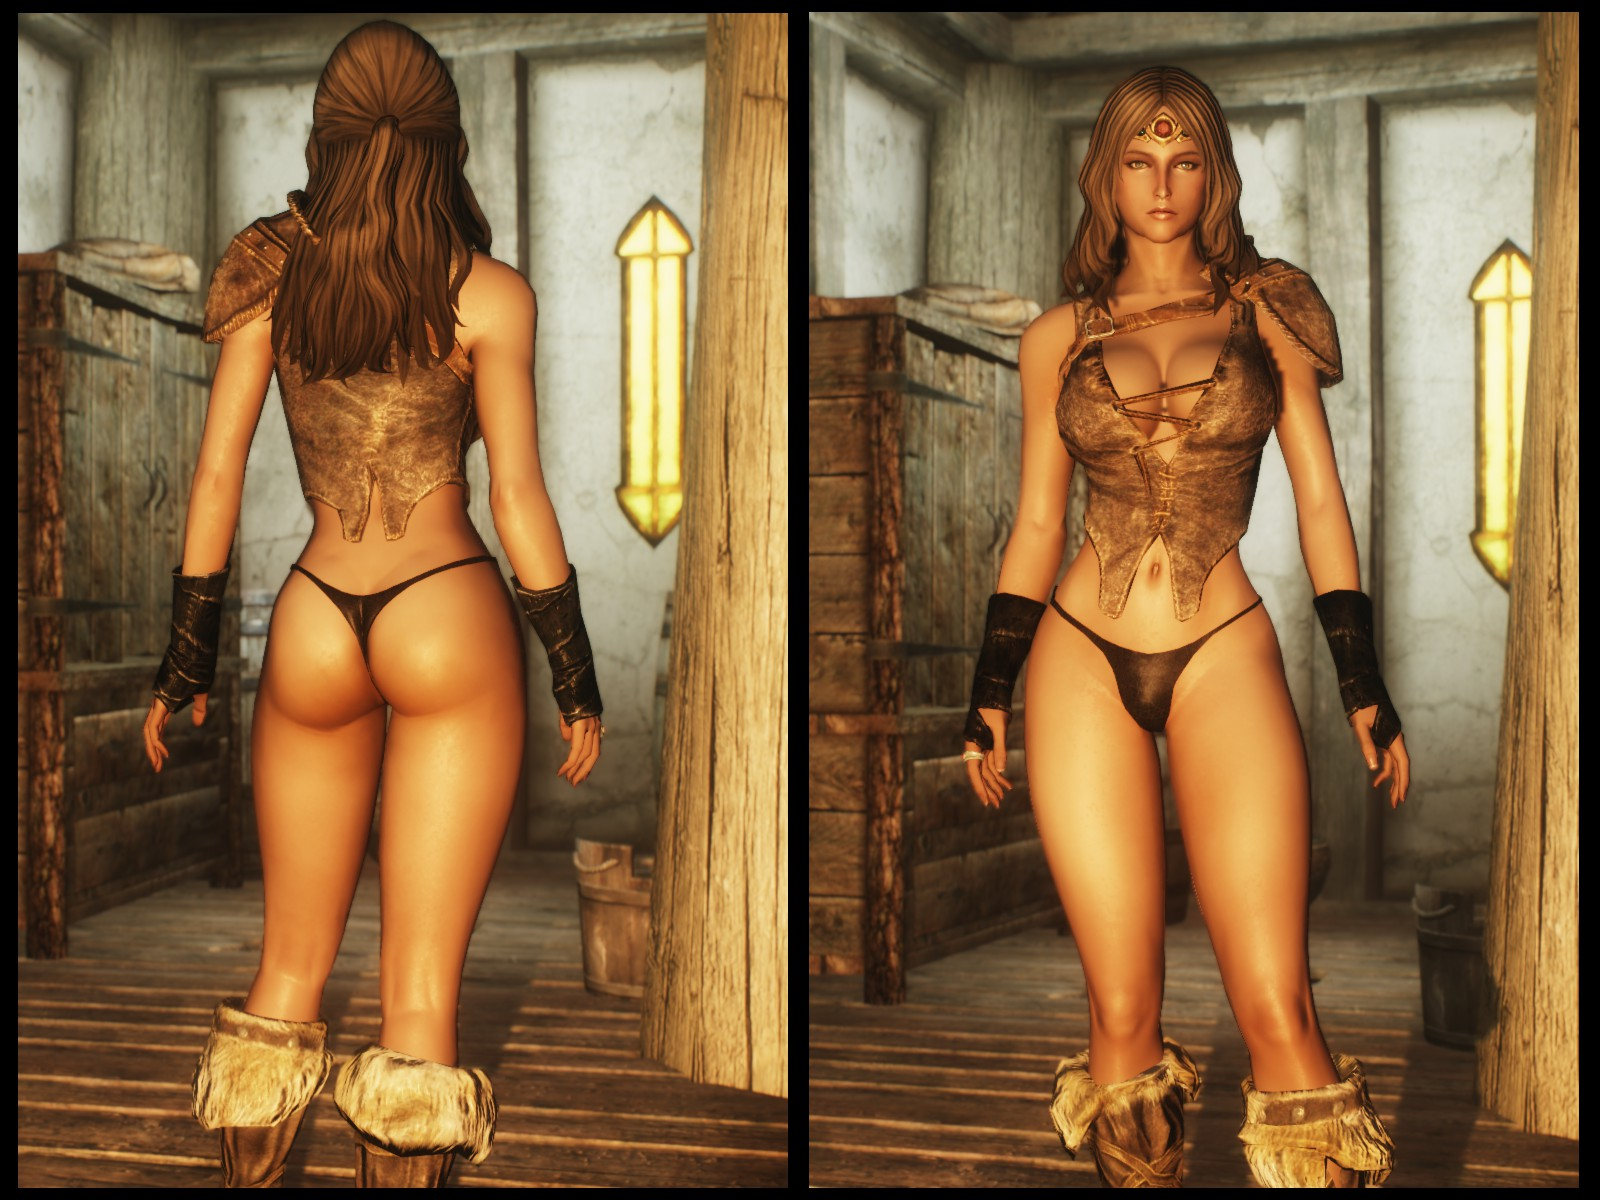 pics-video-game-nude-females-swingers-stories-with